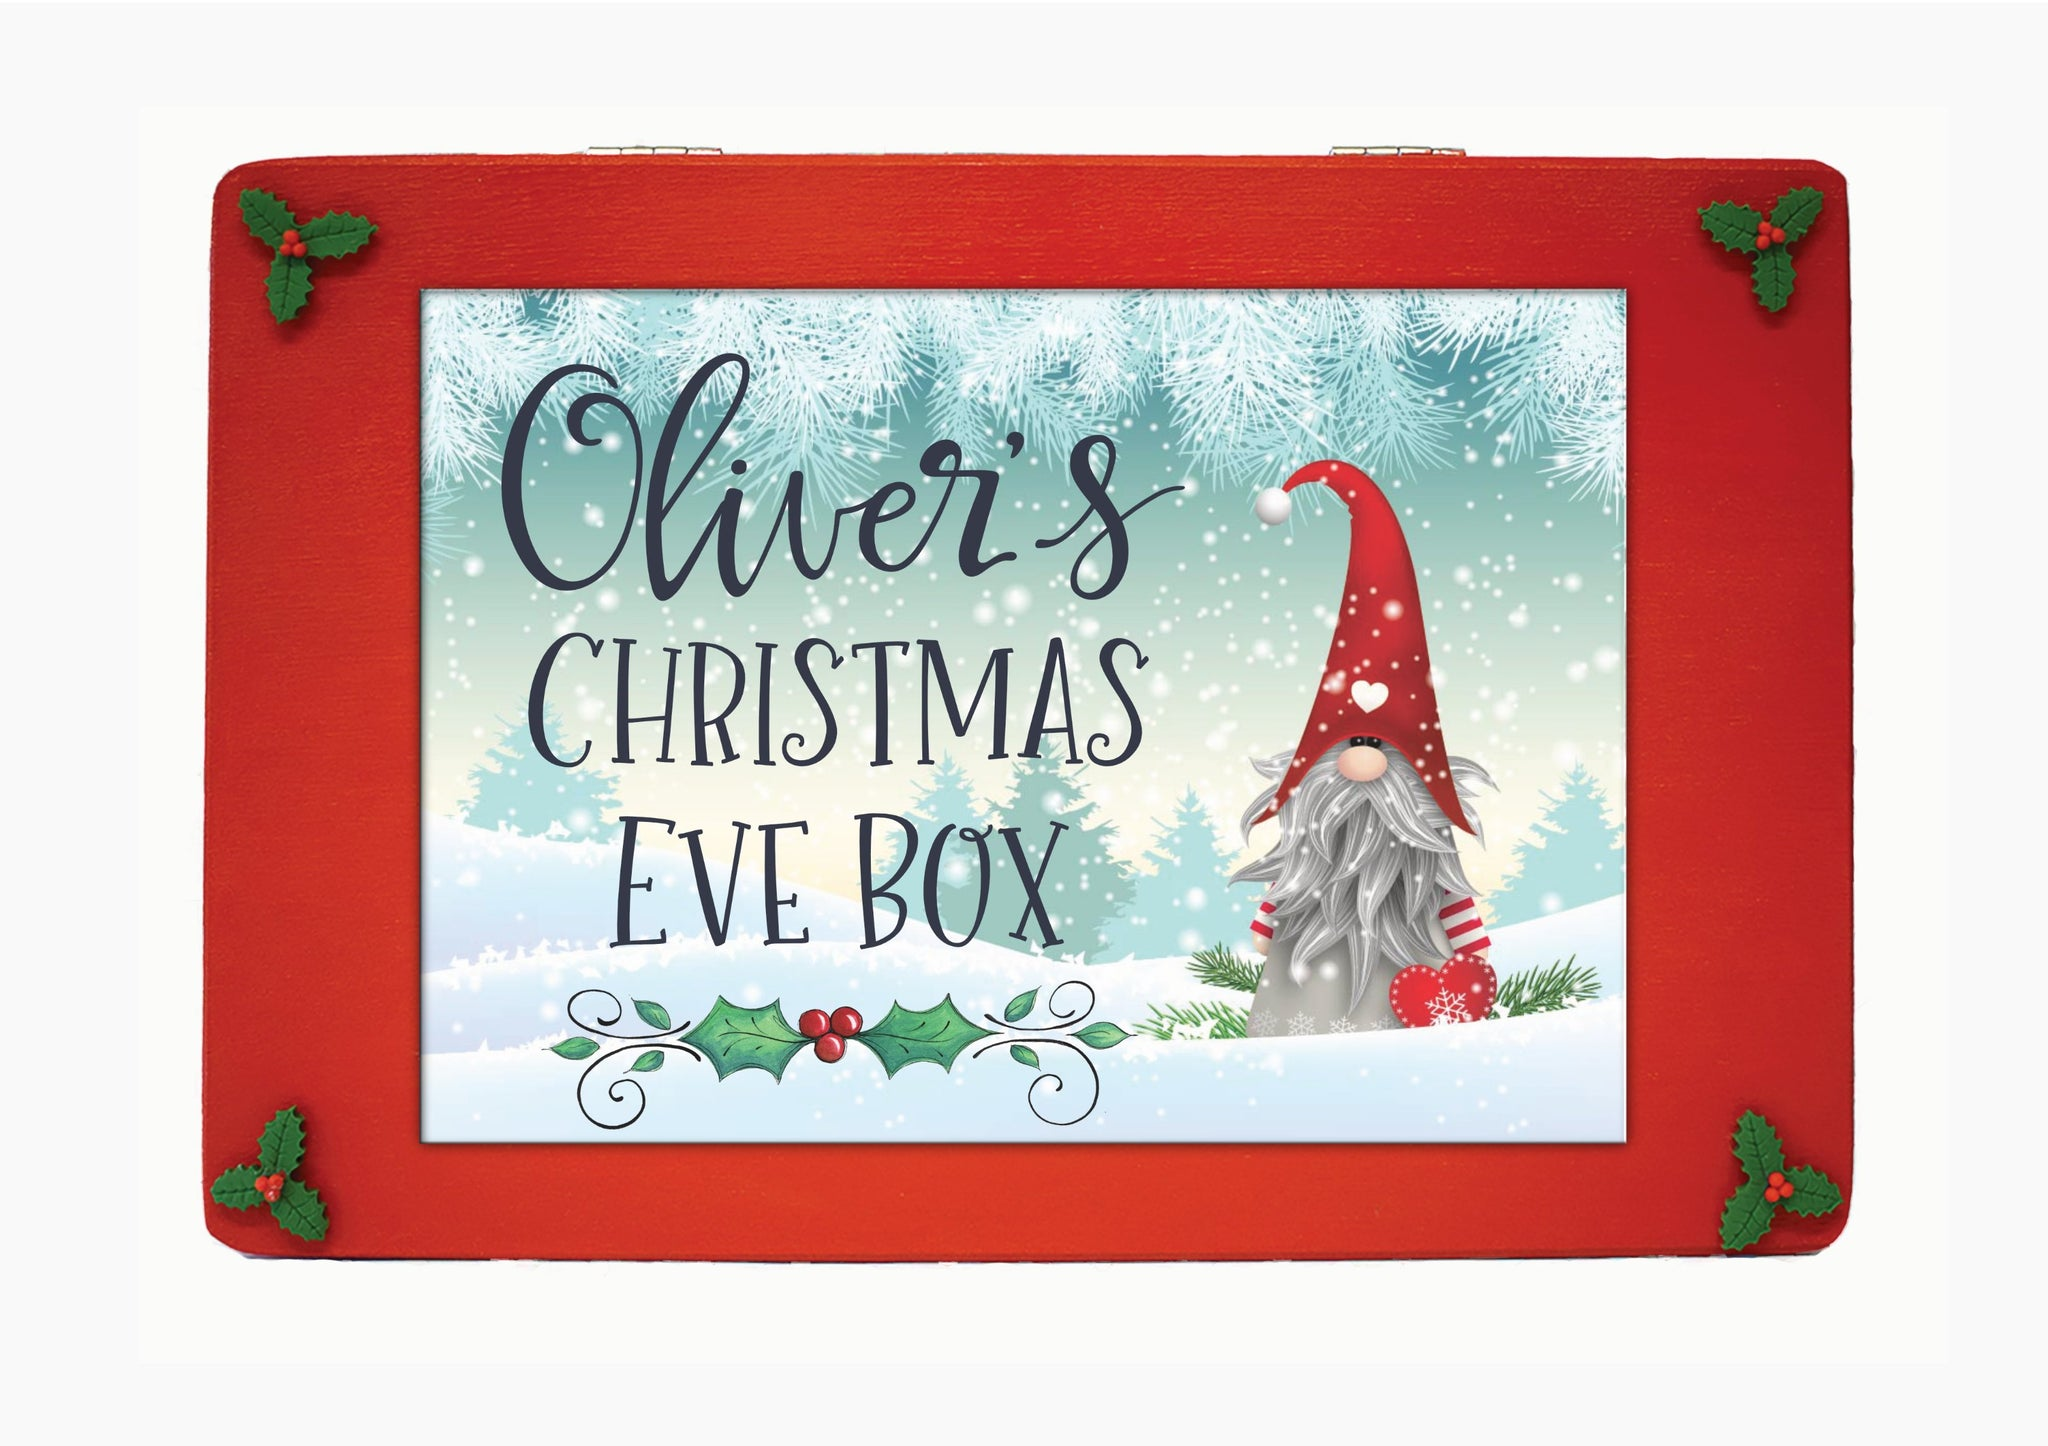 Family Christmas Eve box, Wooden Personalised Christmas Eve Box, Scandinavian Christmas Eve Box, Grandchildren, Traditional Christmas Gift